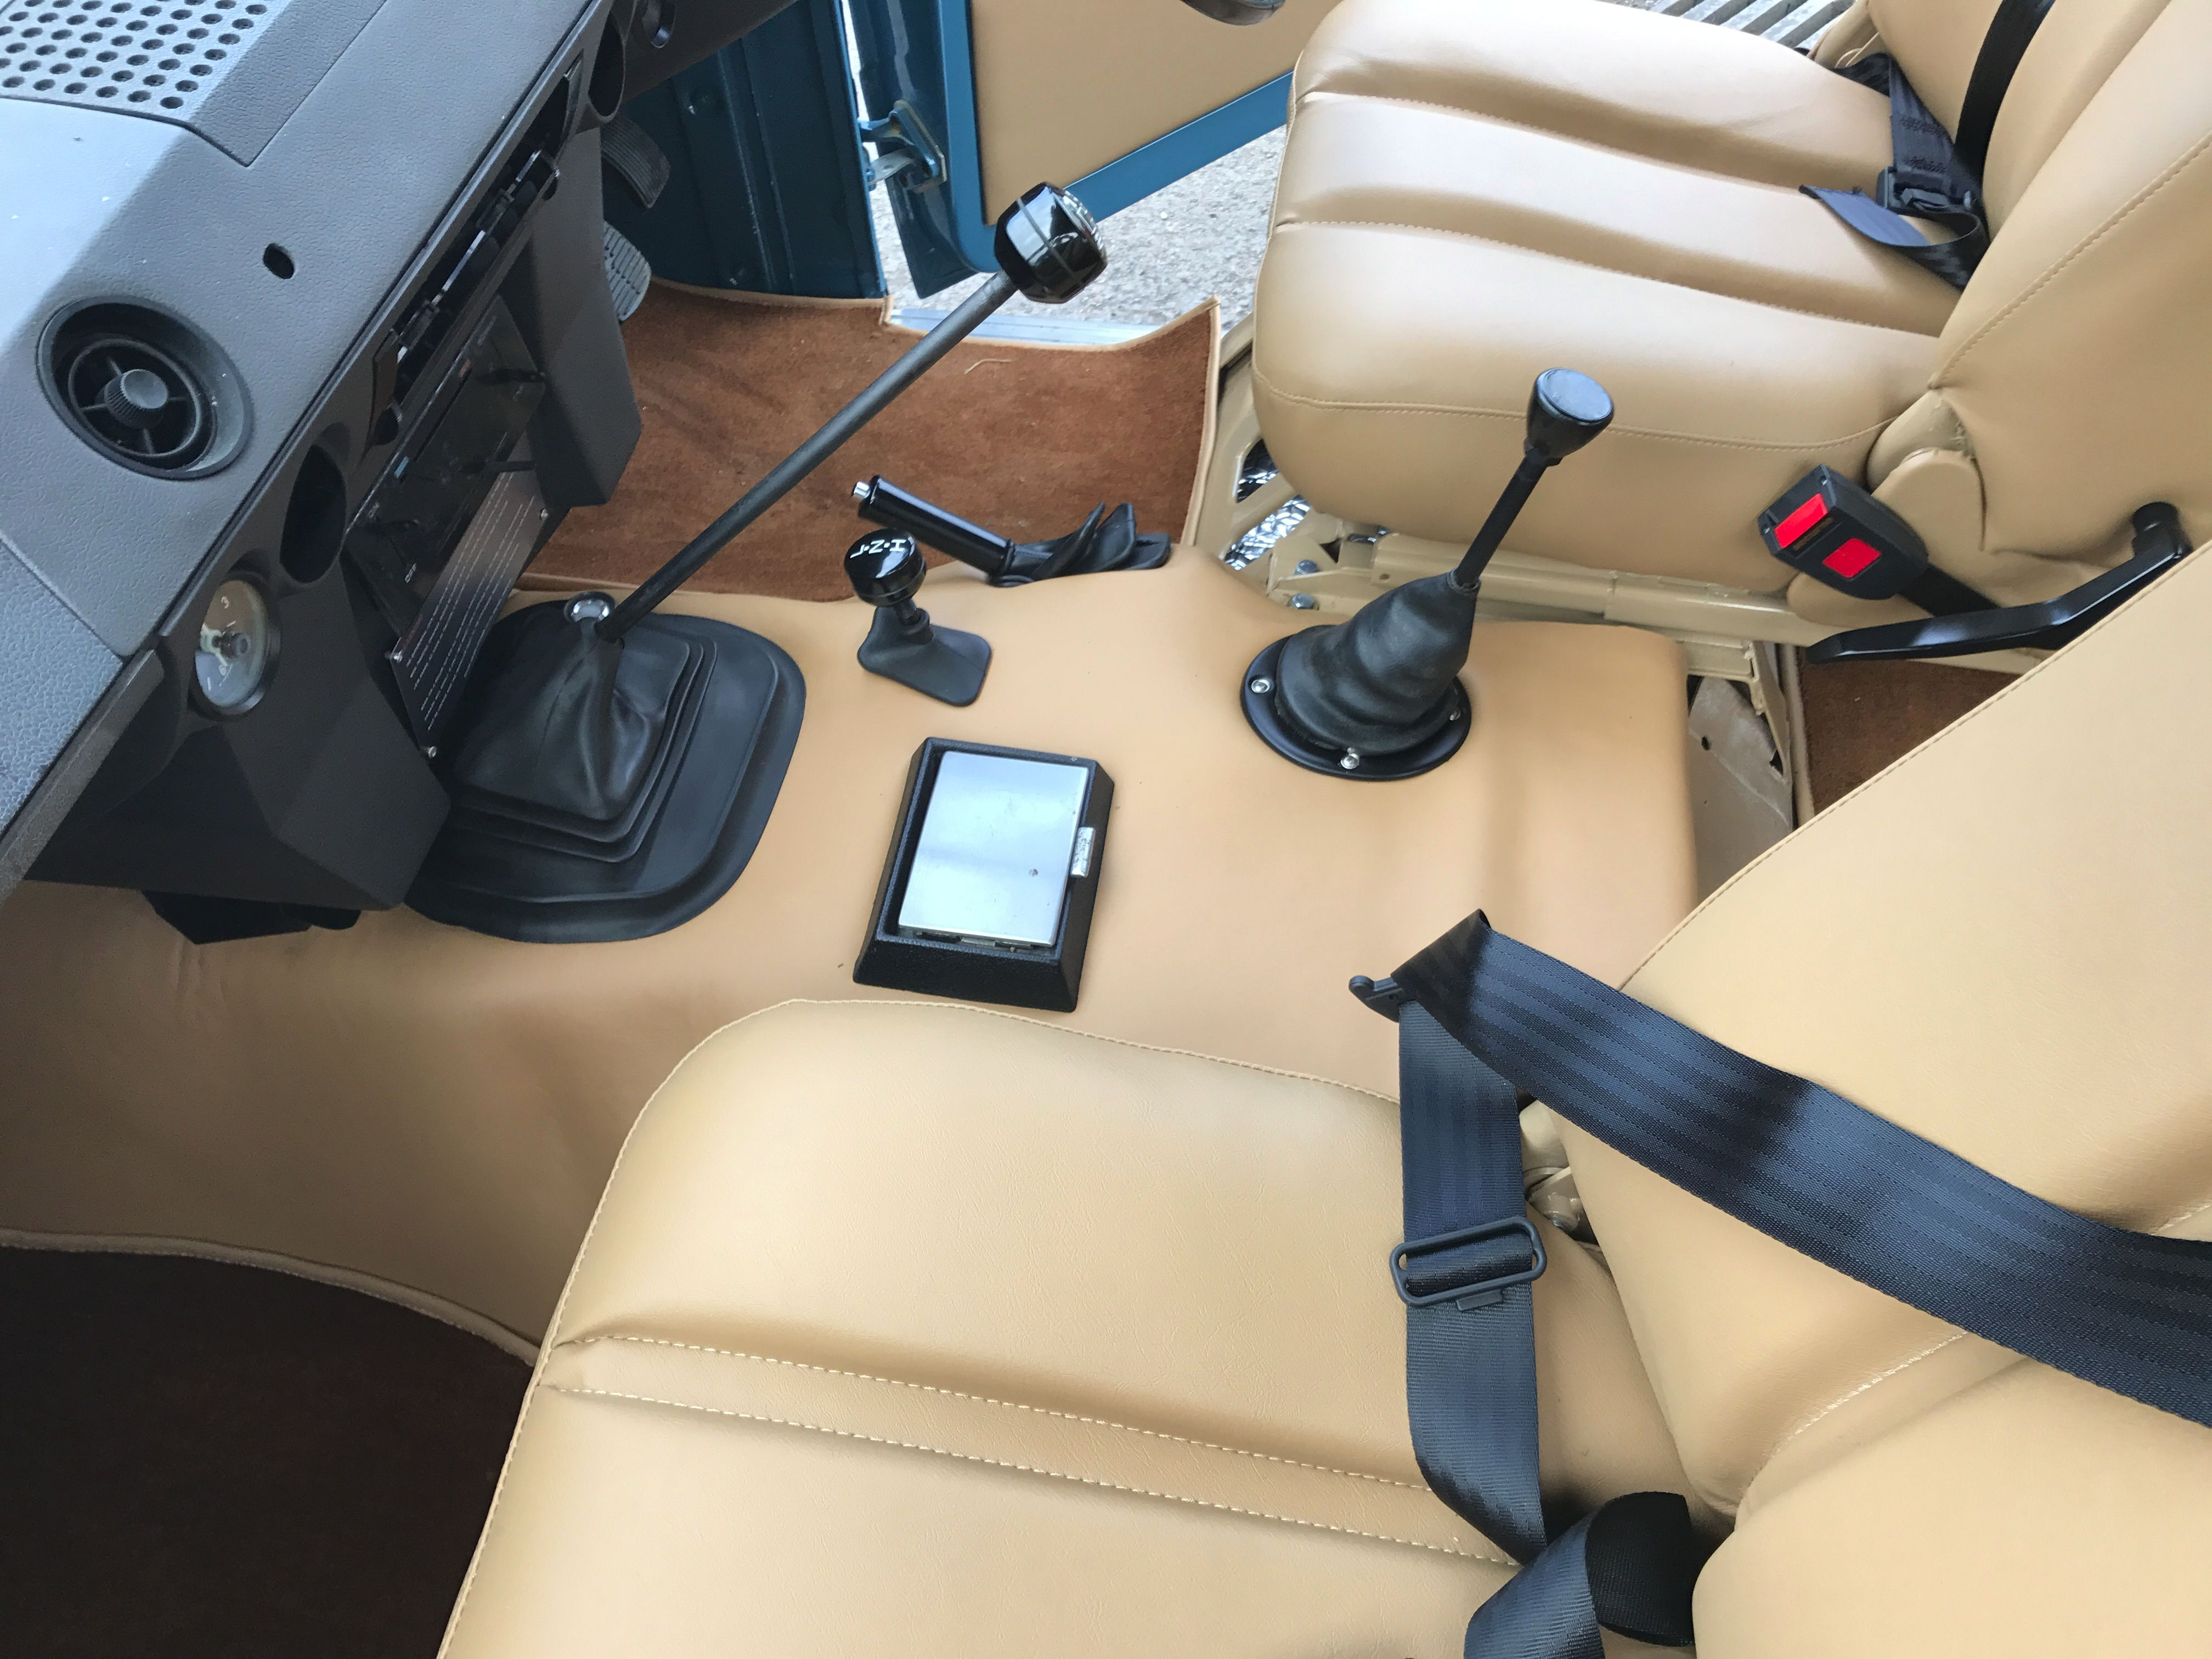 cpr cadillac restoration upholstery for your interior car auto